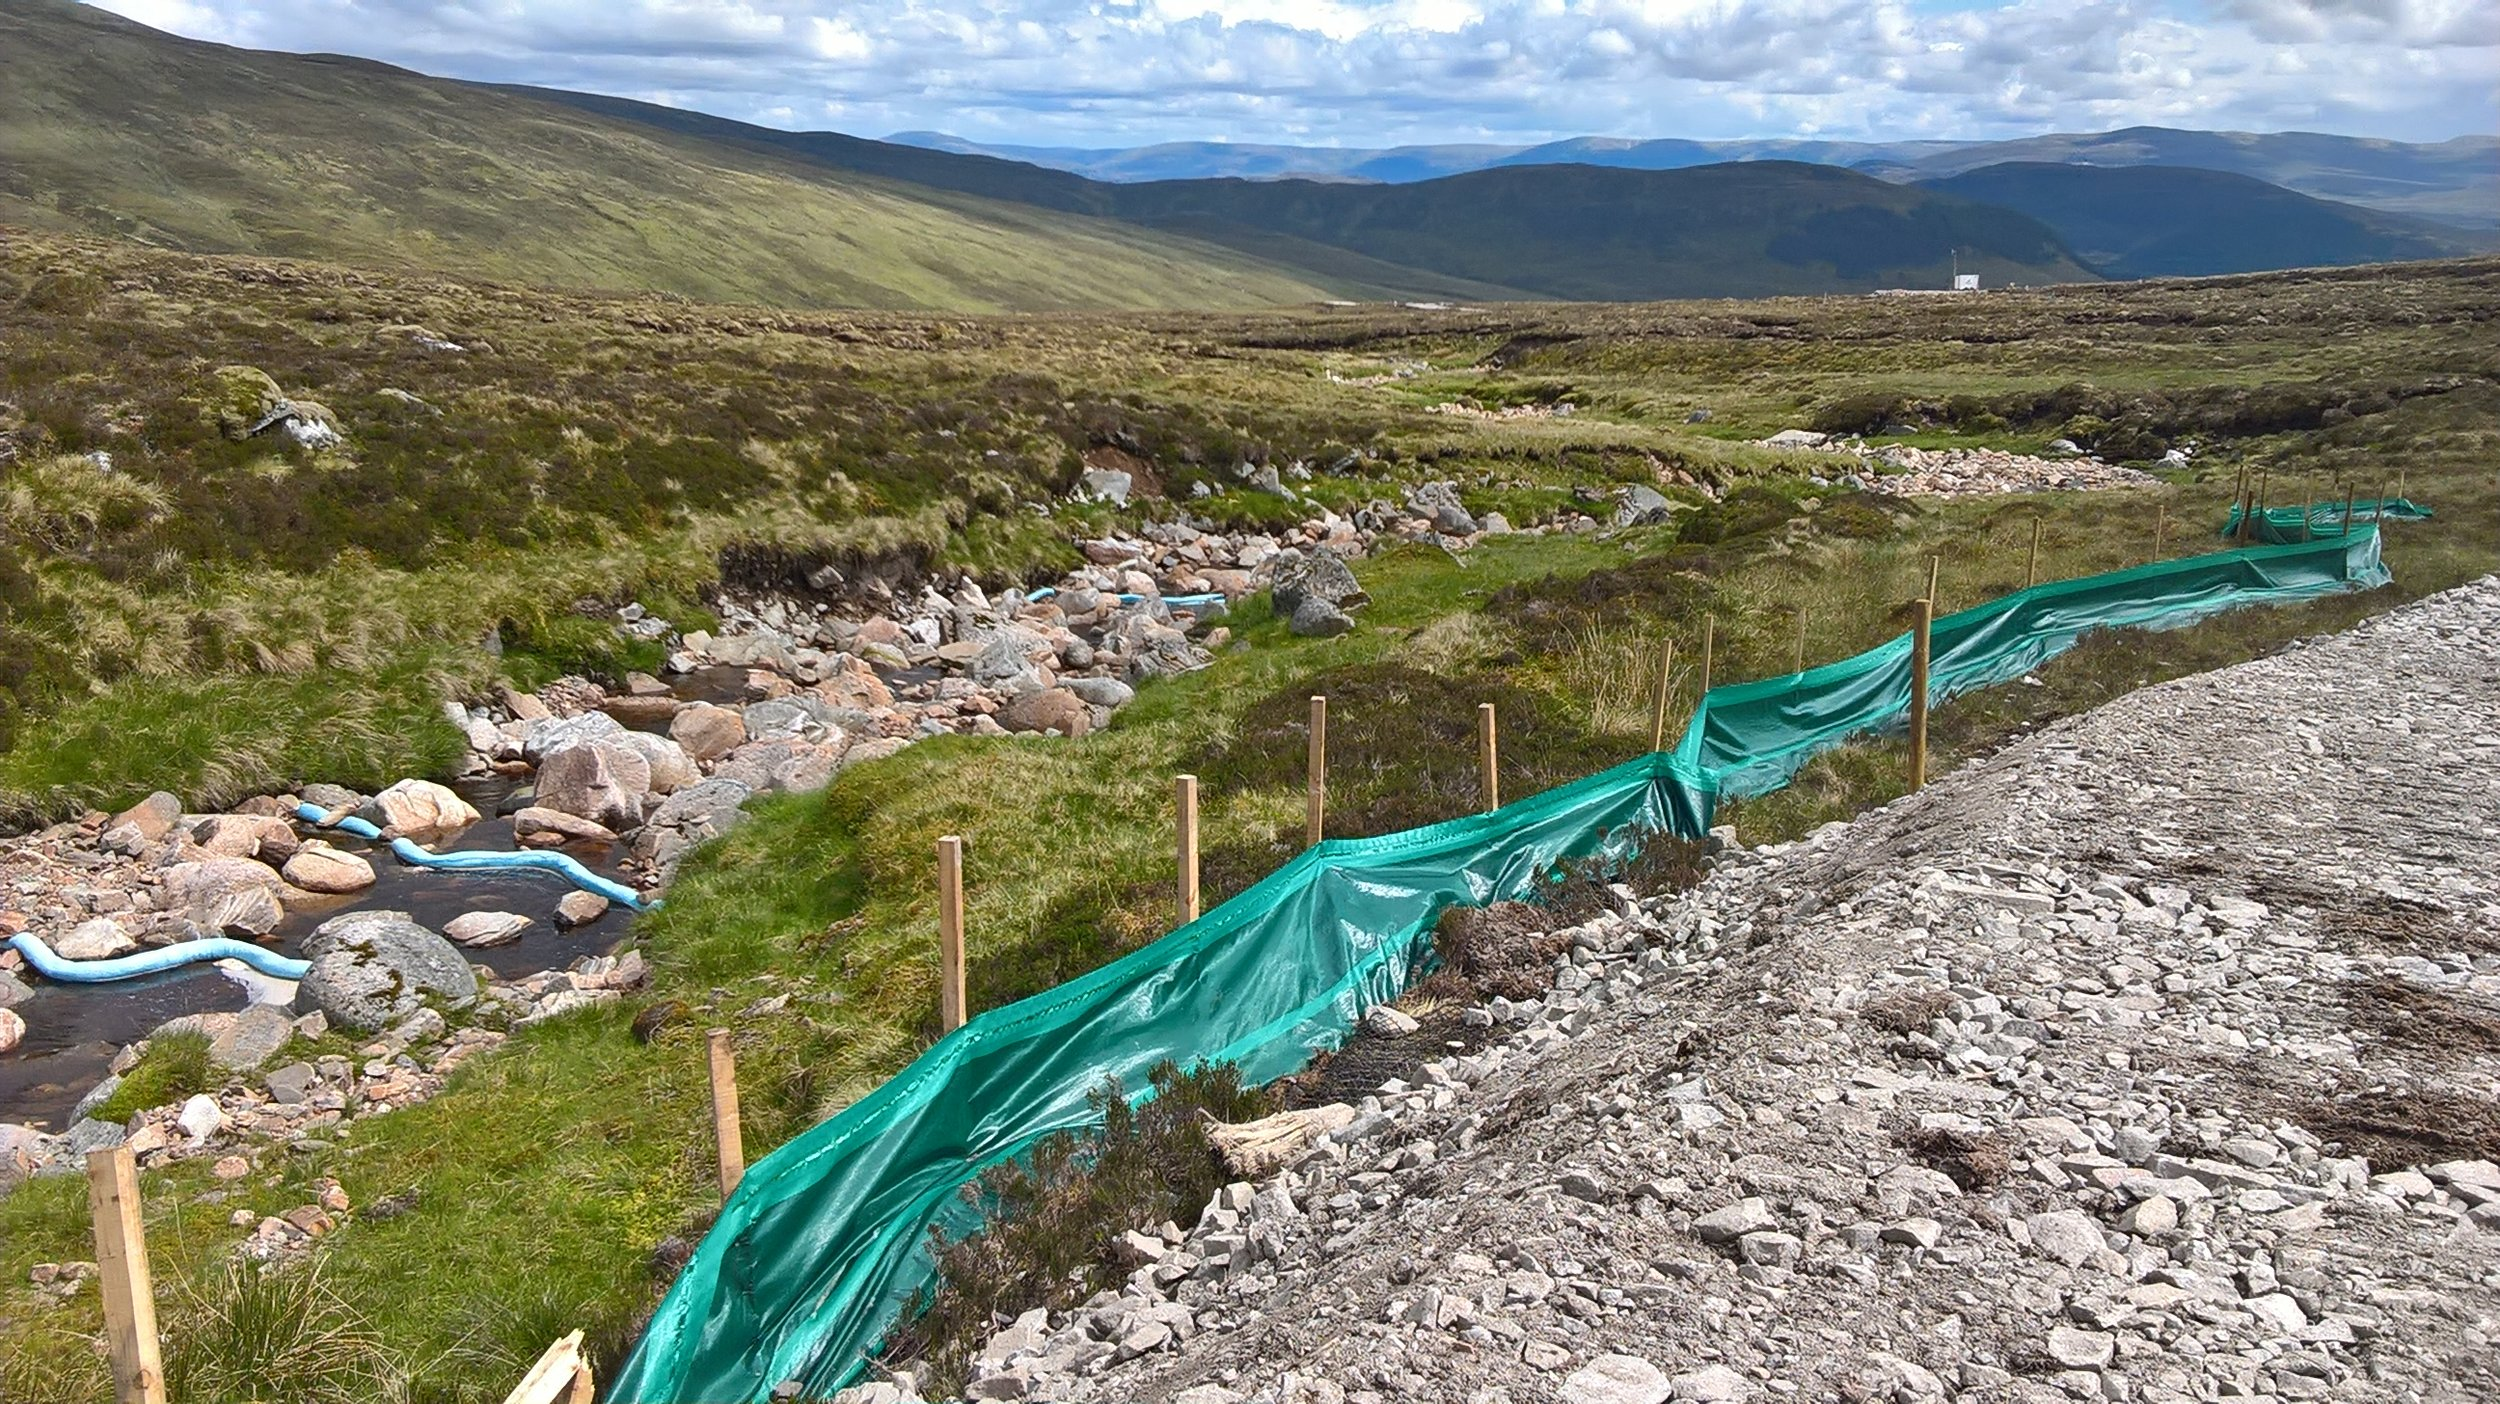 Sillt fencing installed below a newly installed access track to prevent runoff into a water crossing. Booms installed in the burn to absorb any oil droplets that may come from works upstream.